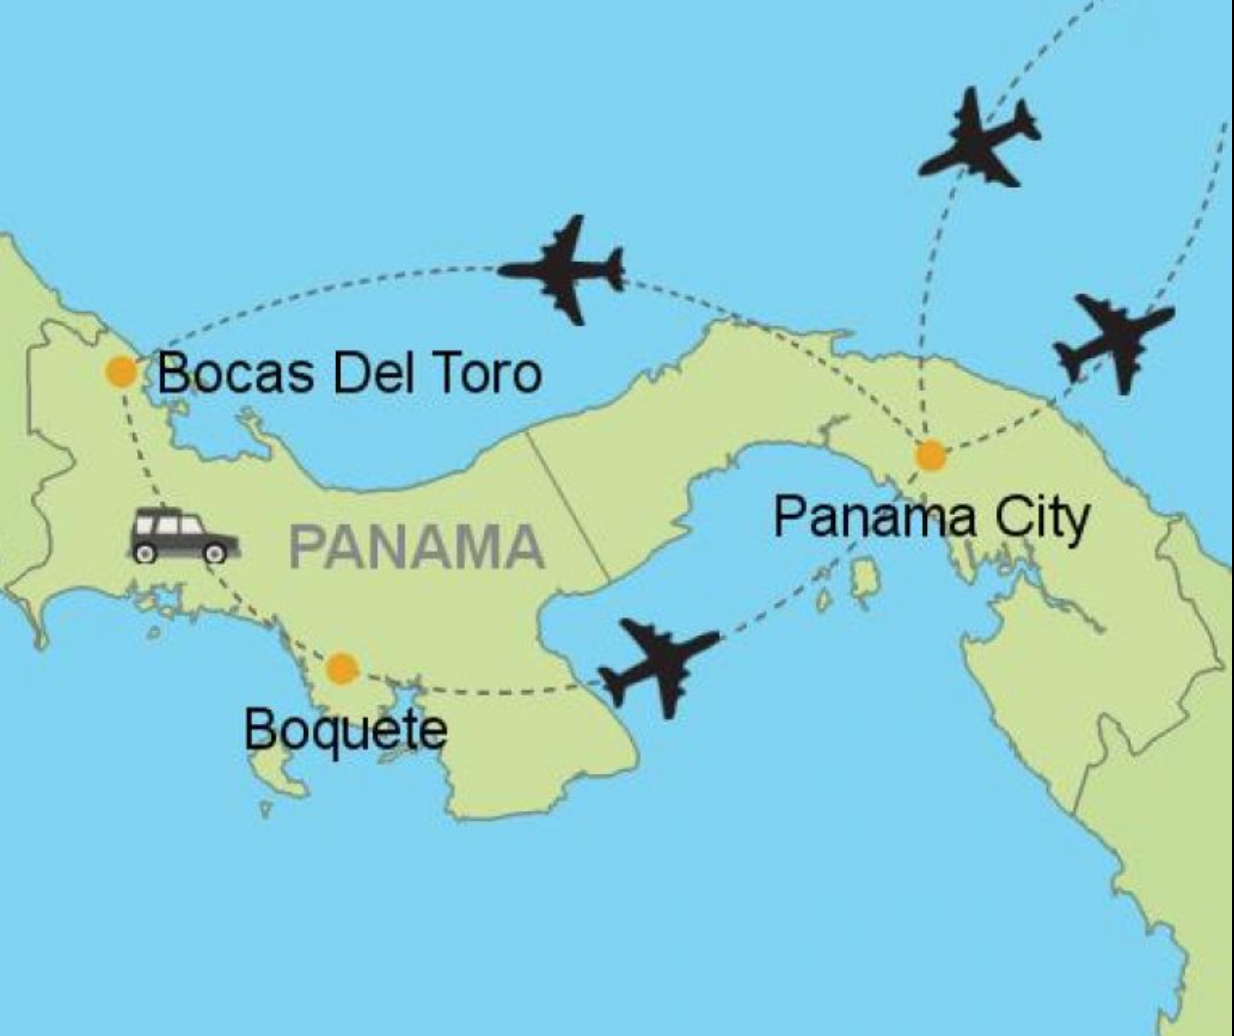 Travel Information... - Now for the exciting part, getting here! You will fly into Tocumen Airport Panama City (PTY) using the most convenient airline from your origin. Once in Panama City, you will take a taxi to Albrook Airport. Often travel itineraries line up and we pair students to share the ride. You'll fly from Albrook Airport (PAC) to Bocas del Toro Airport (BDT) on Air Panama. We will meet you there! (Allow us to confirm your itinerary before purchasing)Another option is to fly into San Jose Costa Rica (SJO), and take the shuttle. It's more time consuming so you will need to account for the additional time to arrive for the start of the program.